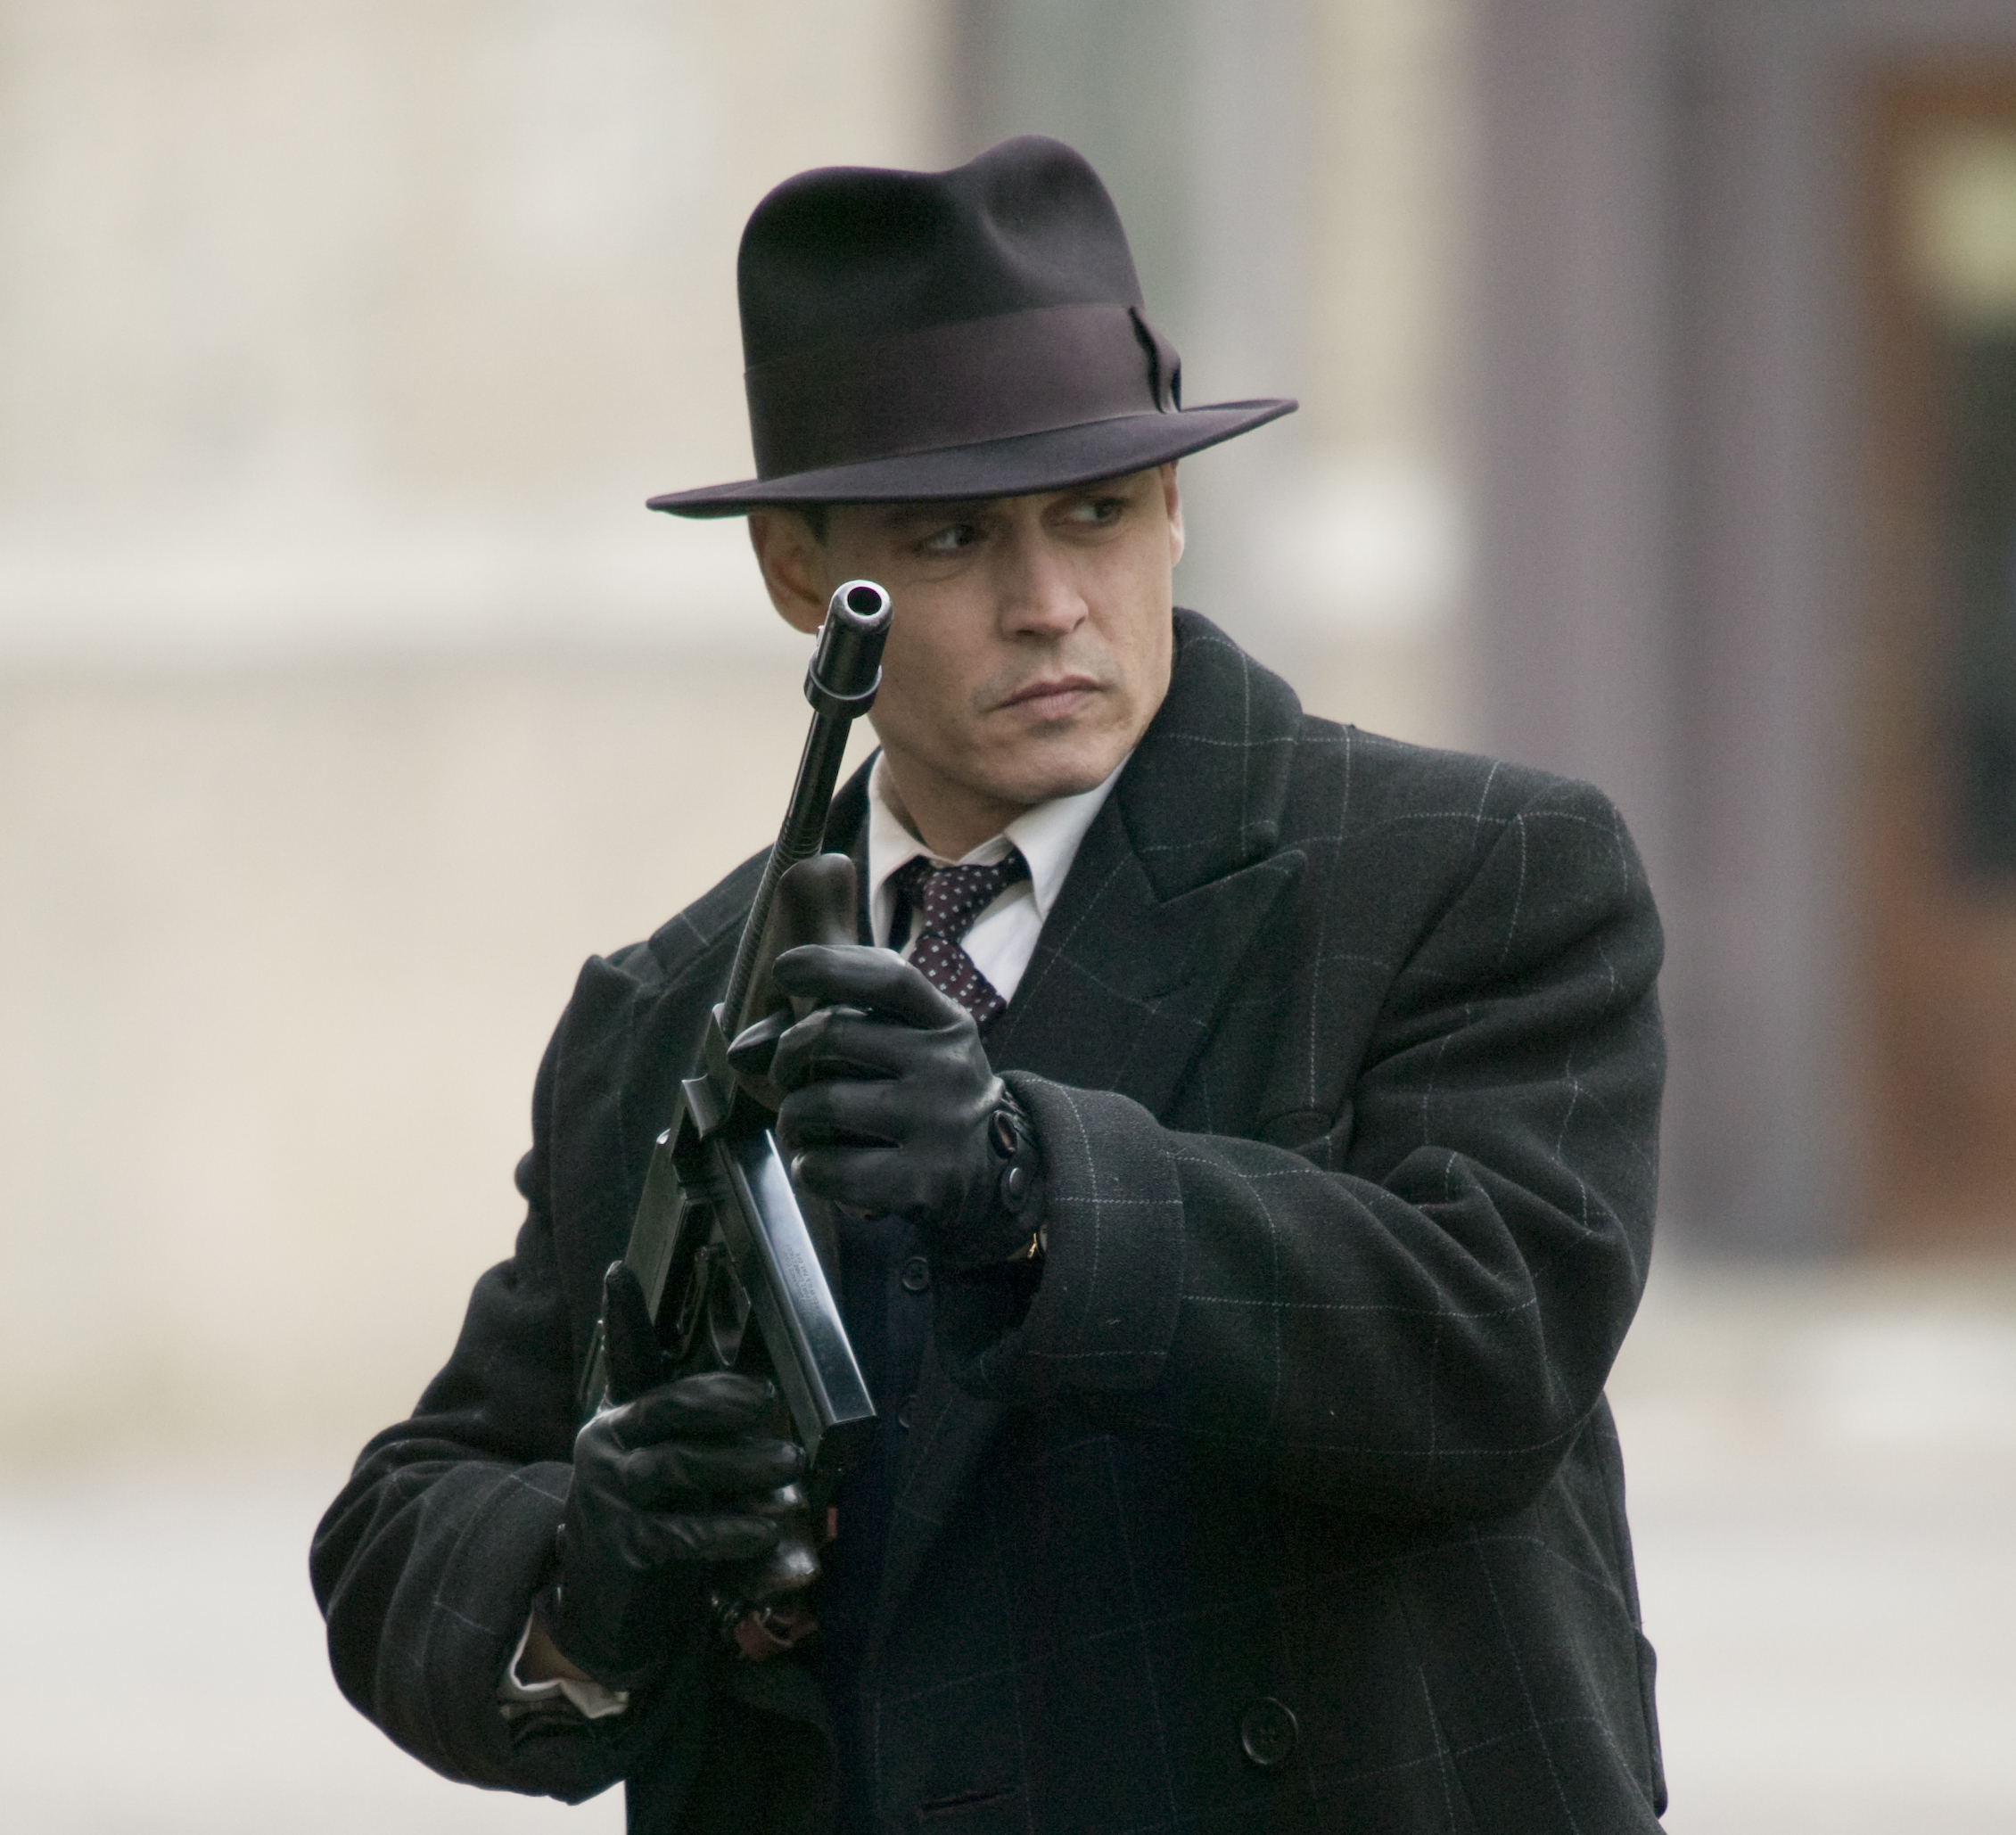 Public-Enemies-movie-stills-johnny-depp-5720722-2261-2058[1]